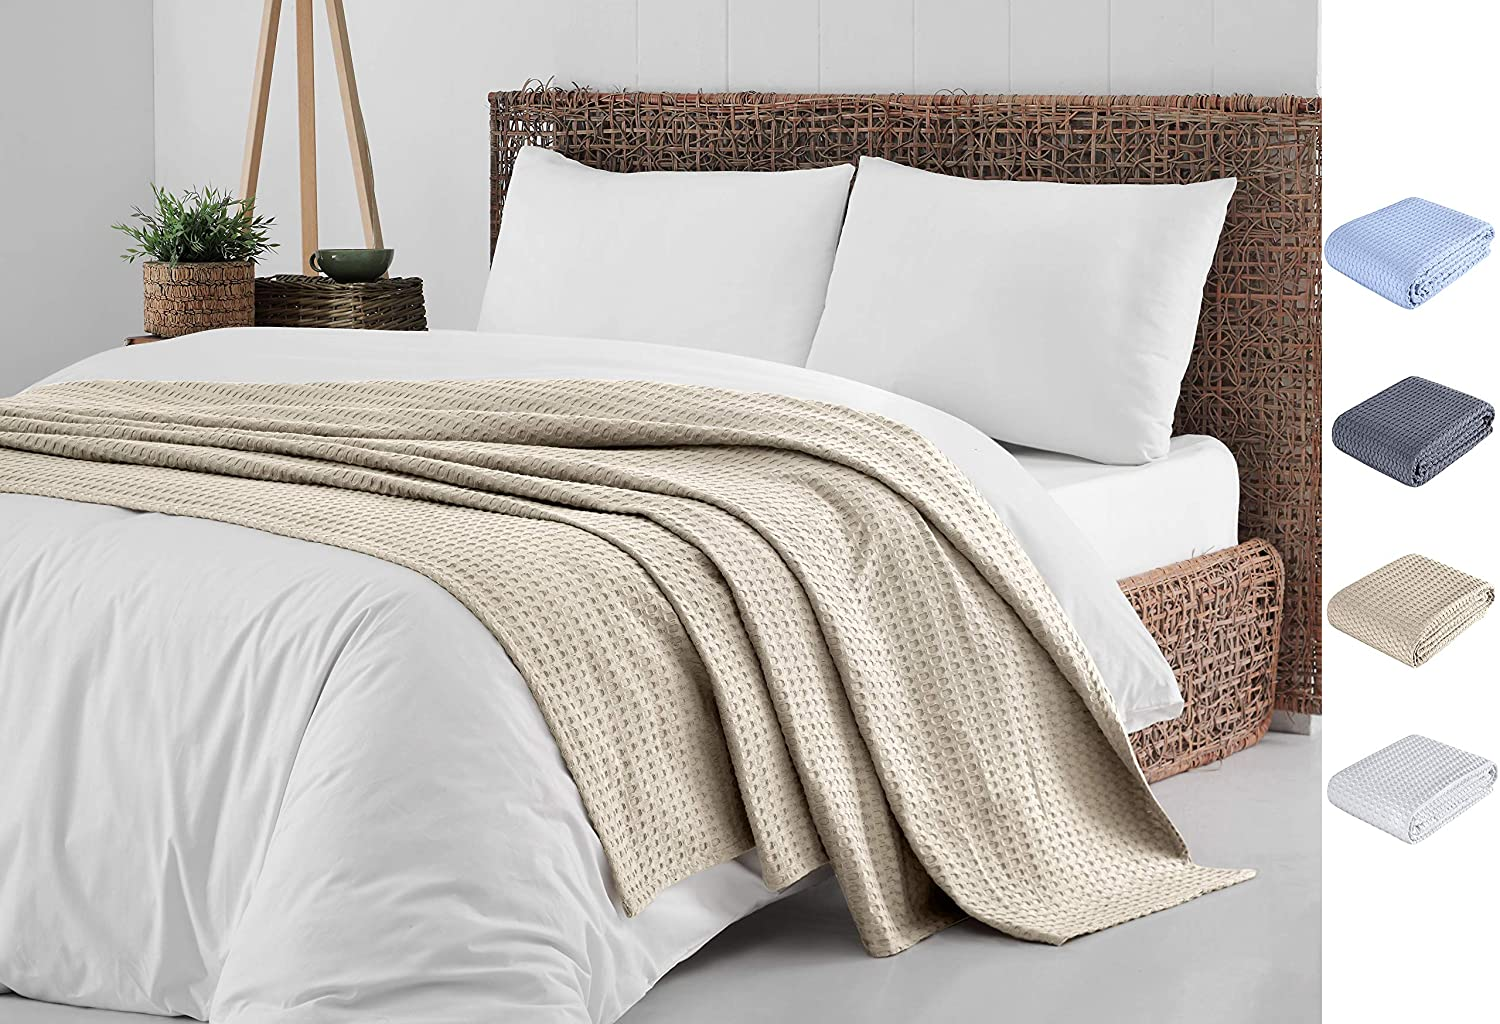 Cotton Blanket Full/Queen Size Khaki |%100 Turkish Premium Soft Breathable Cotton | Thermal Queen Blanket | Perfect for Layering Any Bed for Summer - Winter | Cotton Blankets Queen Size - Bed Throw